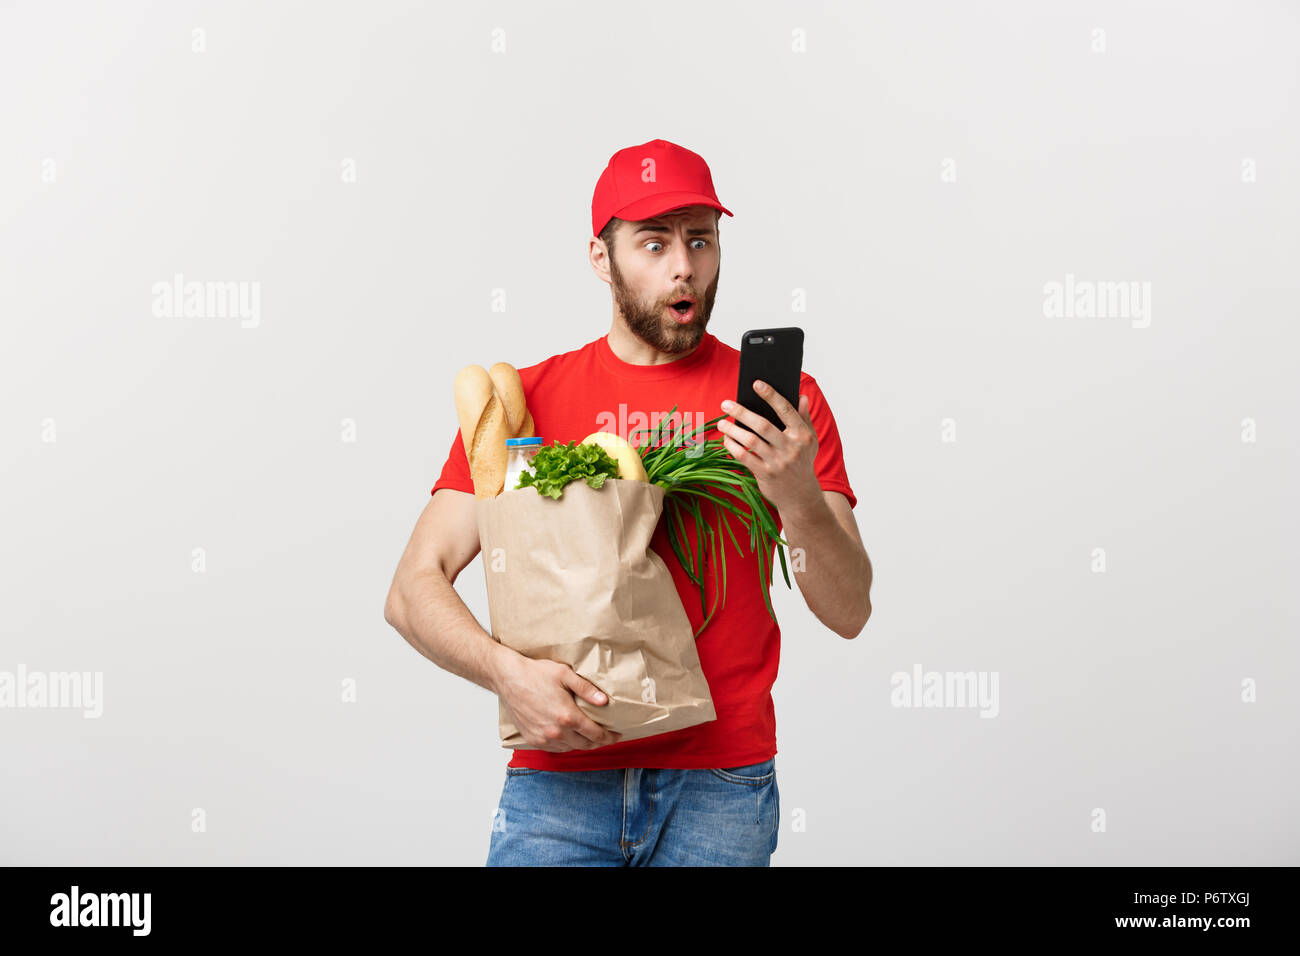 Delivery man holding paper bag with food and shock or angry with something in mobile phone on white background - Stock Image